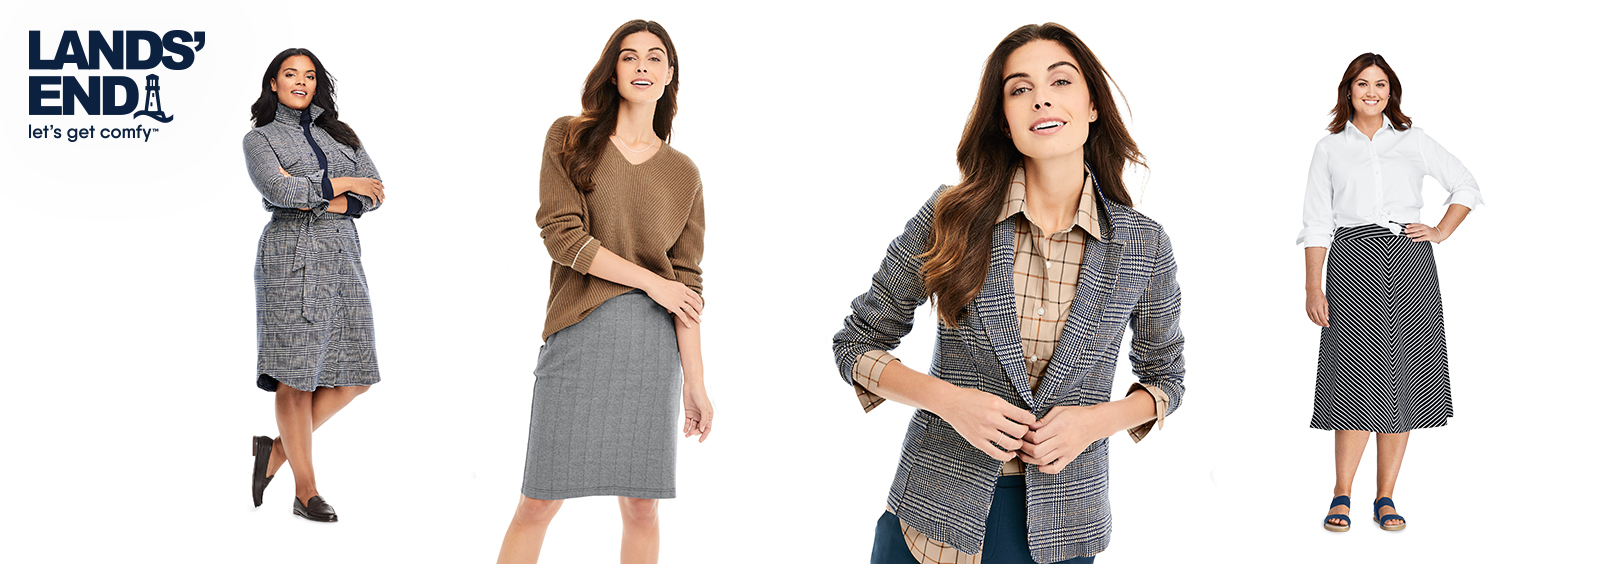 Business Casual Winter Wear for the Office